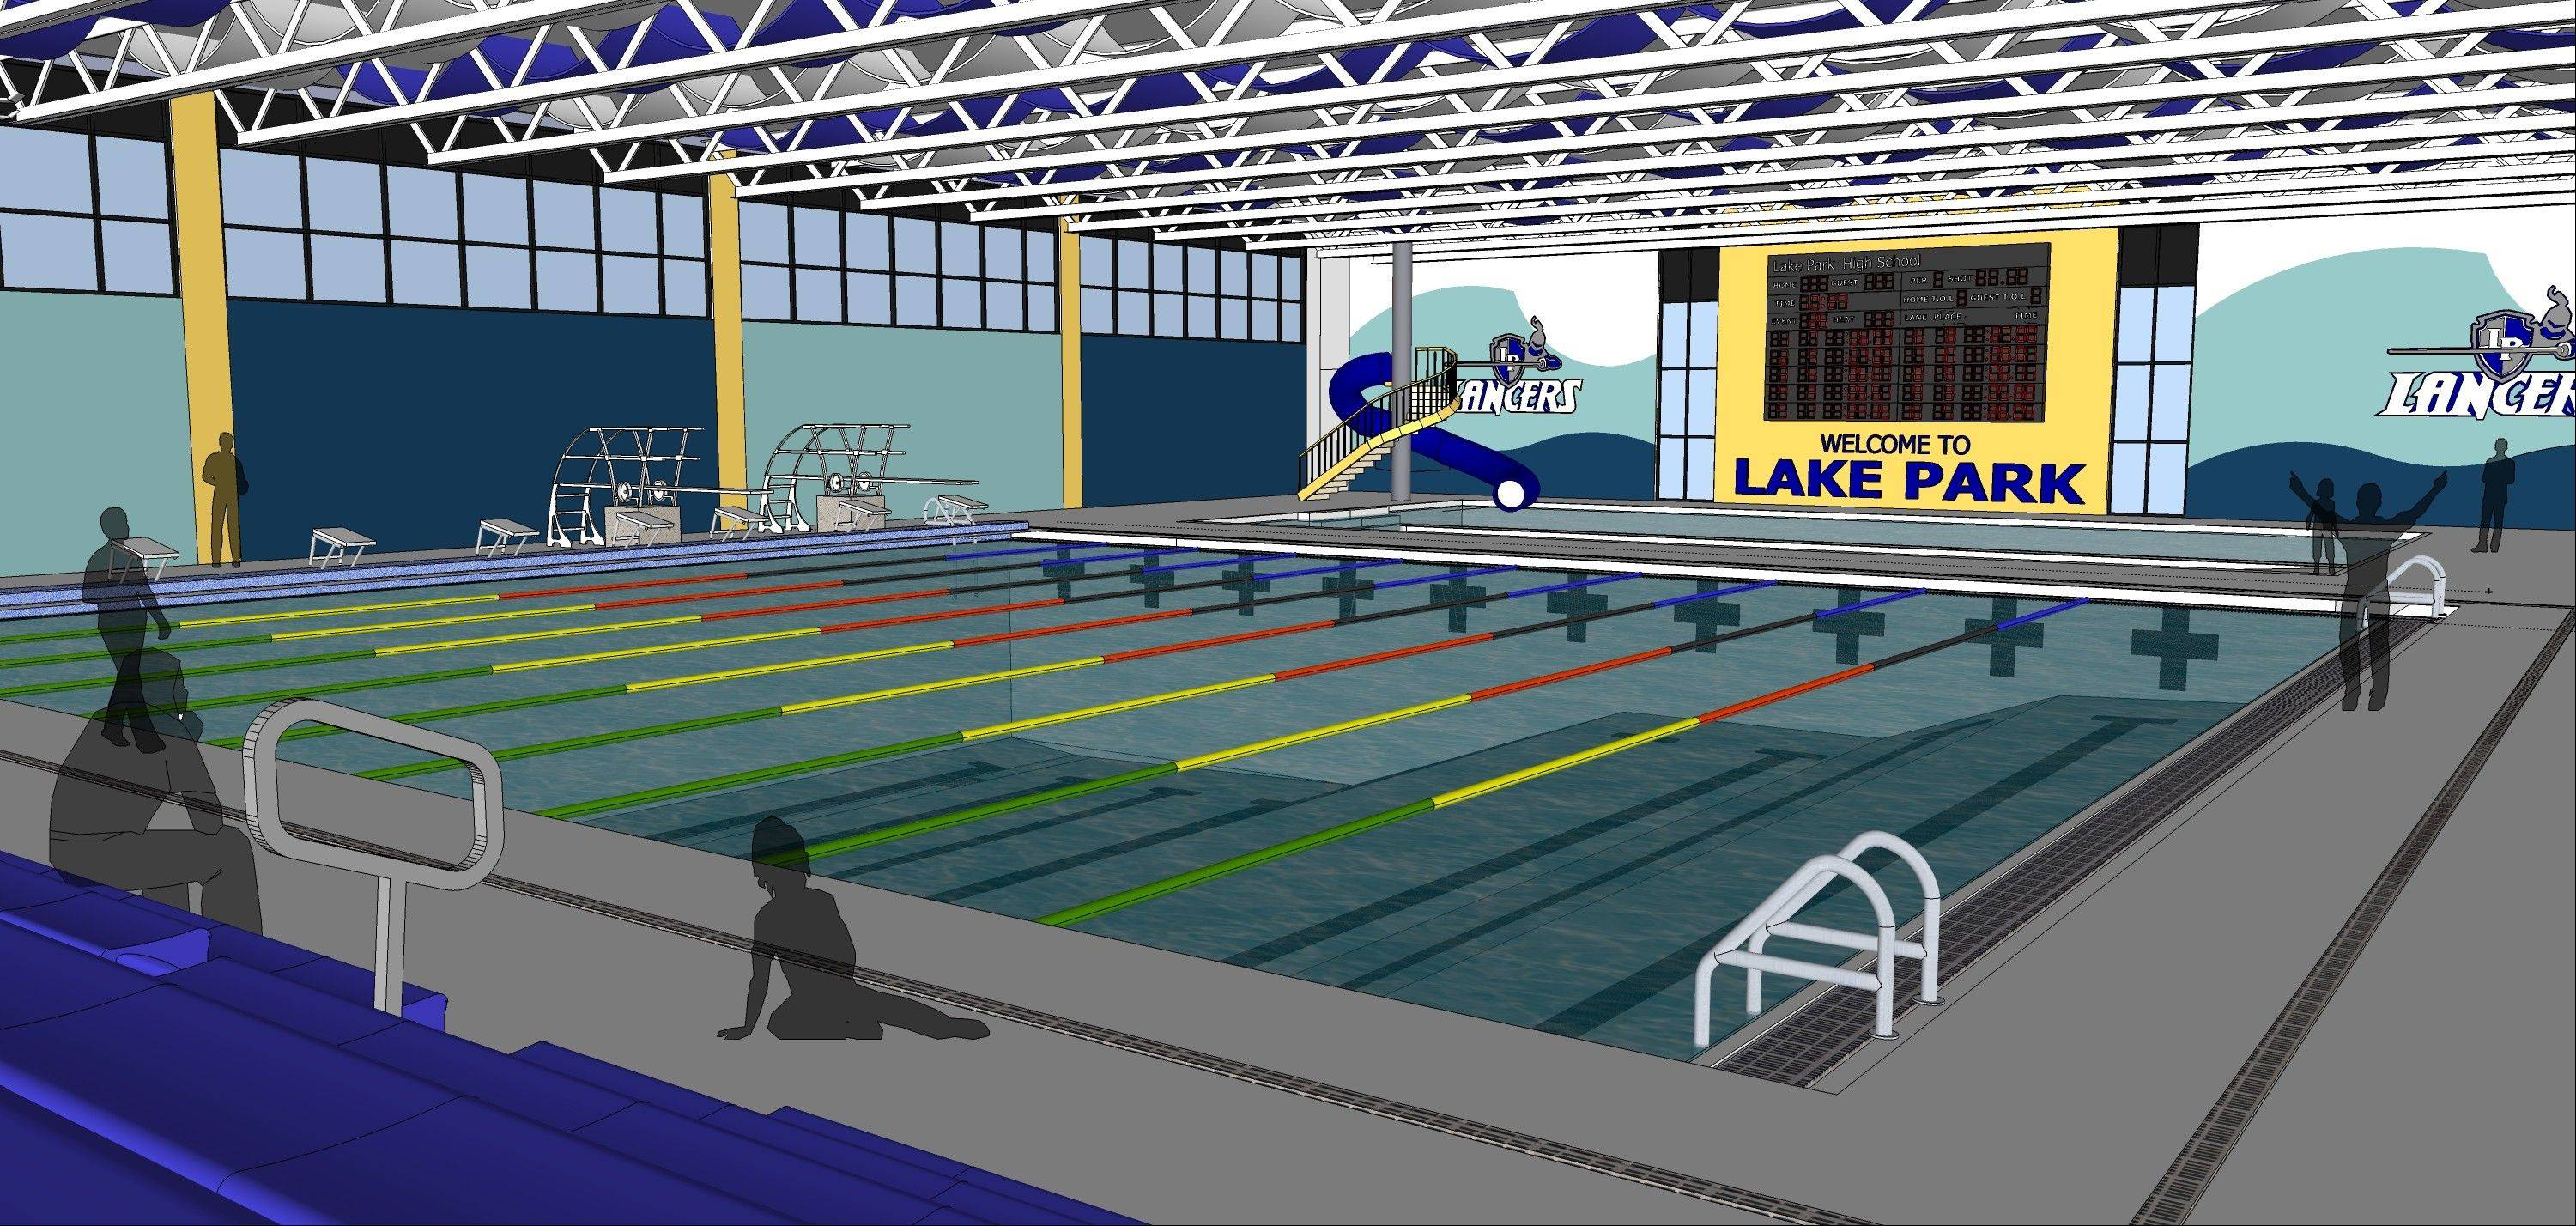 Latest pool push has Lake Park officials 'very optimistic'